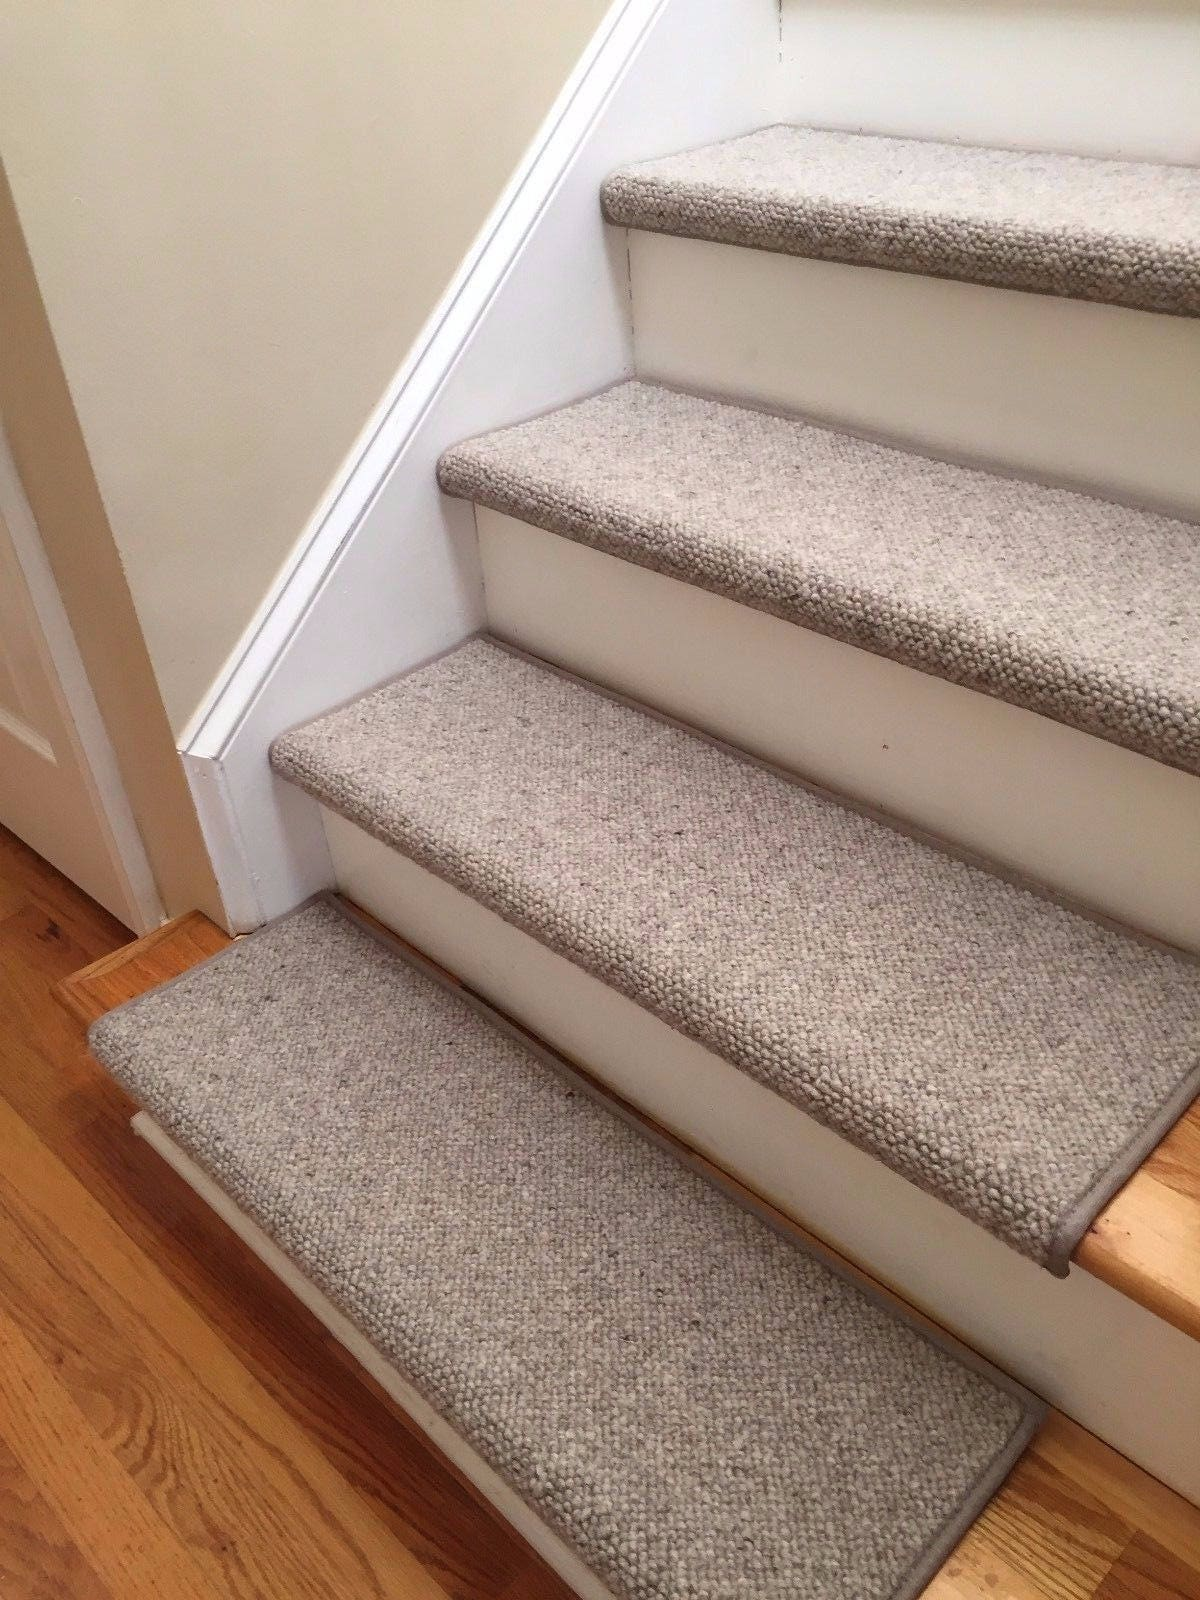 Alfa Stone 100% Wool TRUE Bullnose™ Carpet Stair Tread Handmade Step Cover  Comfort Safety Dog Cat Pet Runner  (Sold Individually)